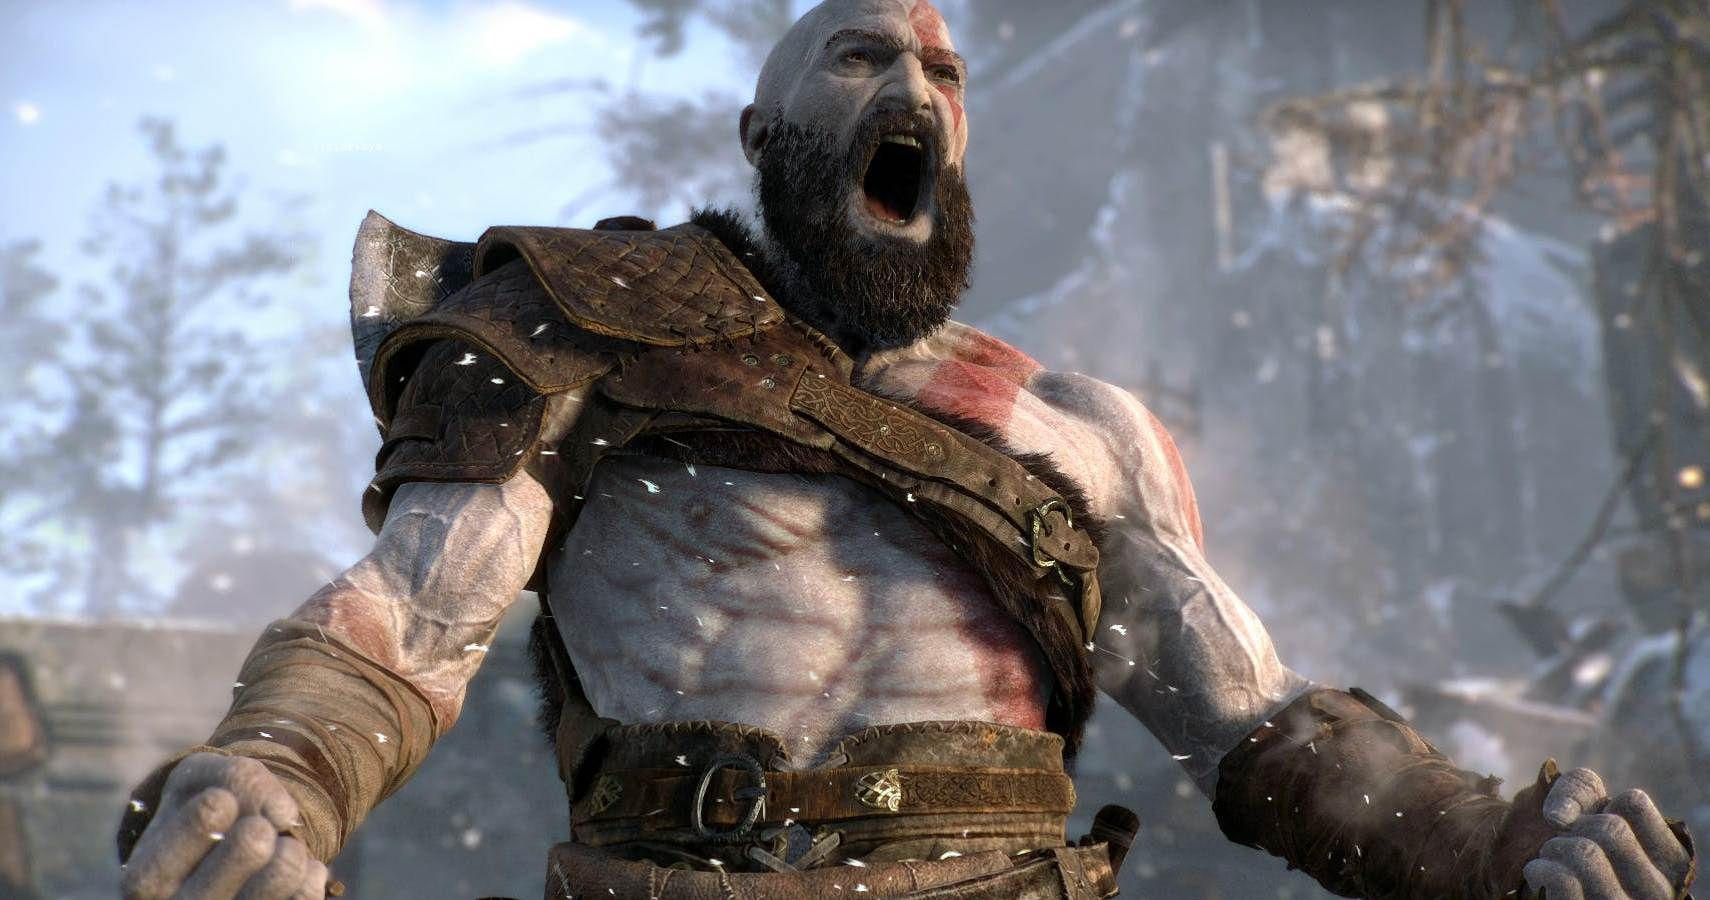 10 Things God Of War Does Better Than Other PS4 Games | TheGamer